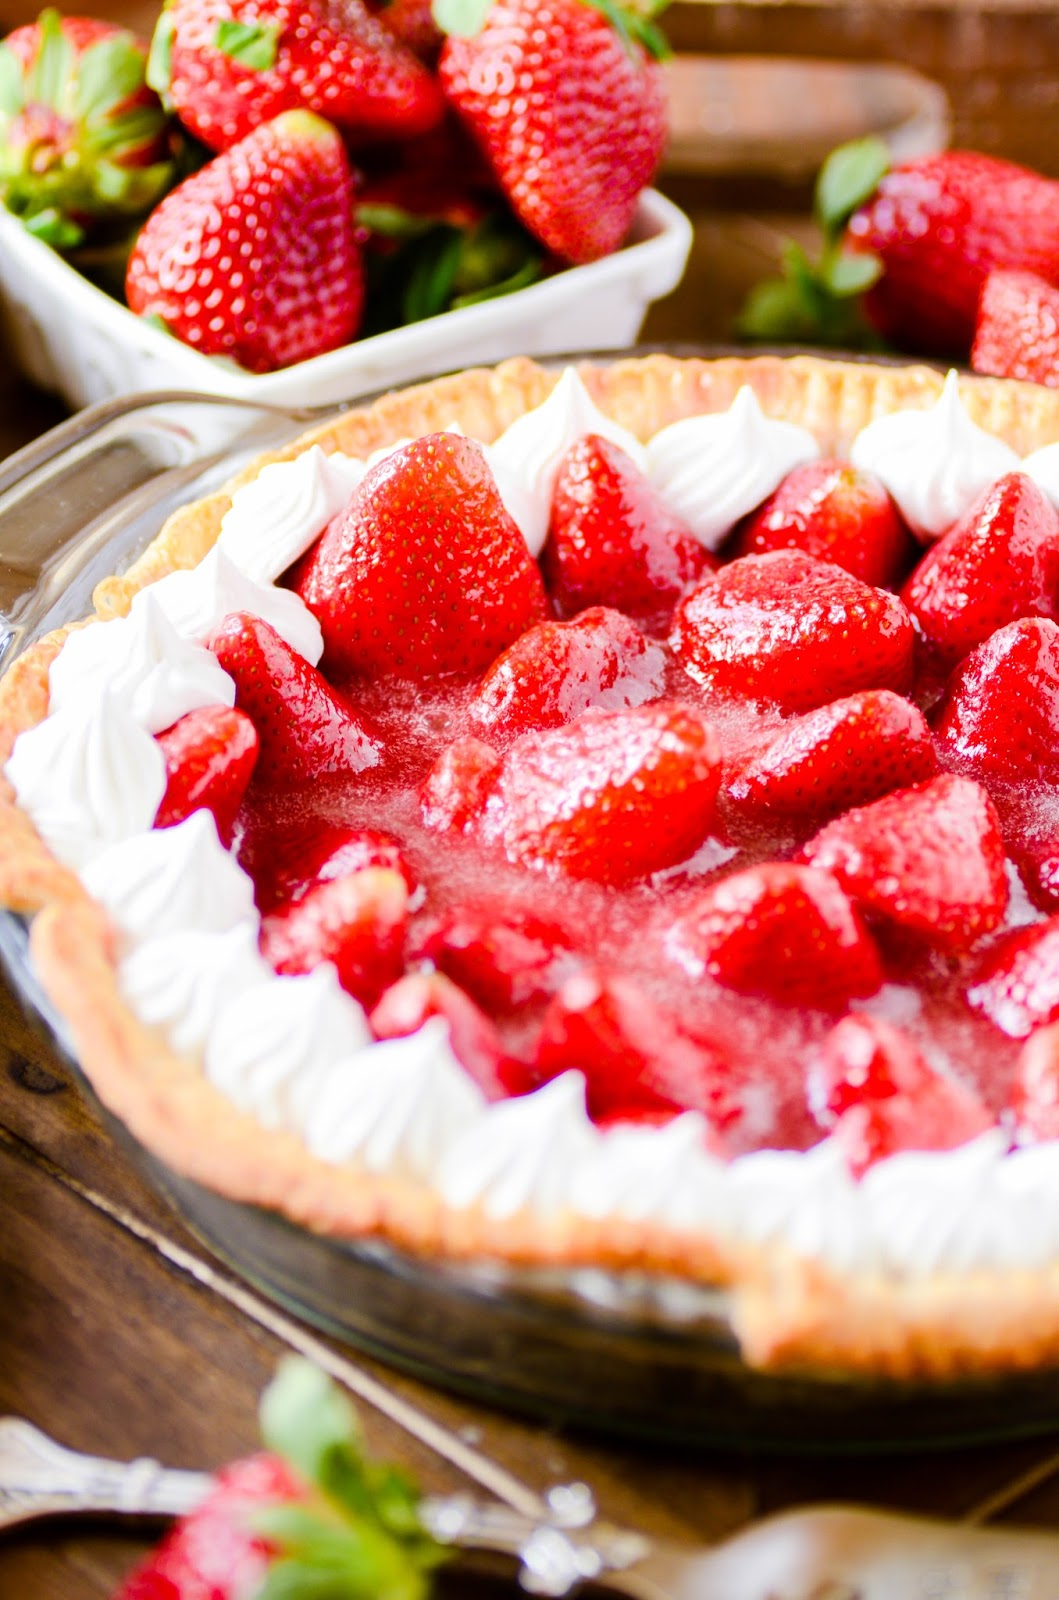 Delicious strawberry pie with a completely homemade filling.